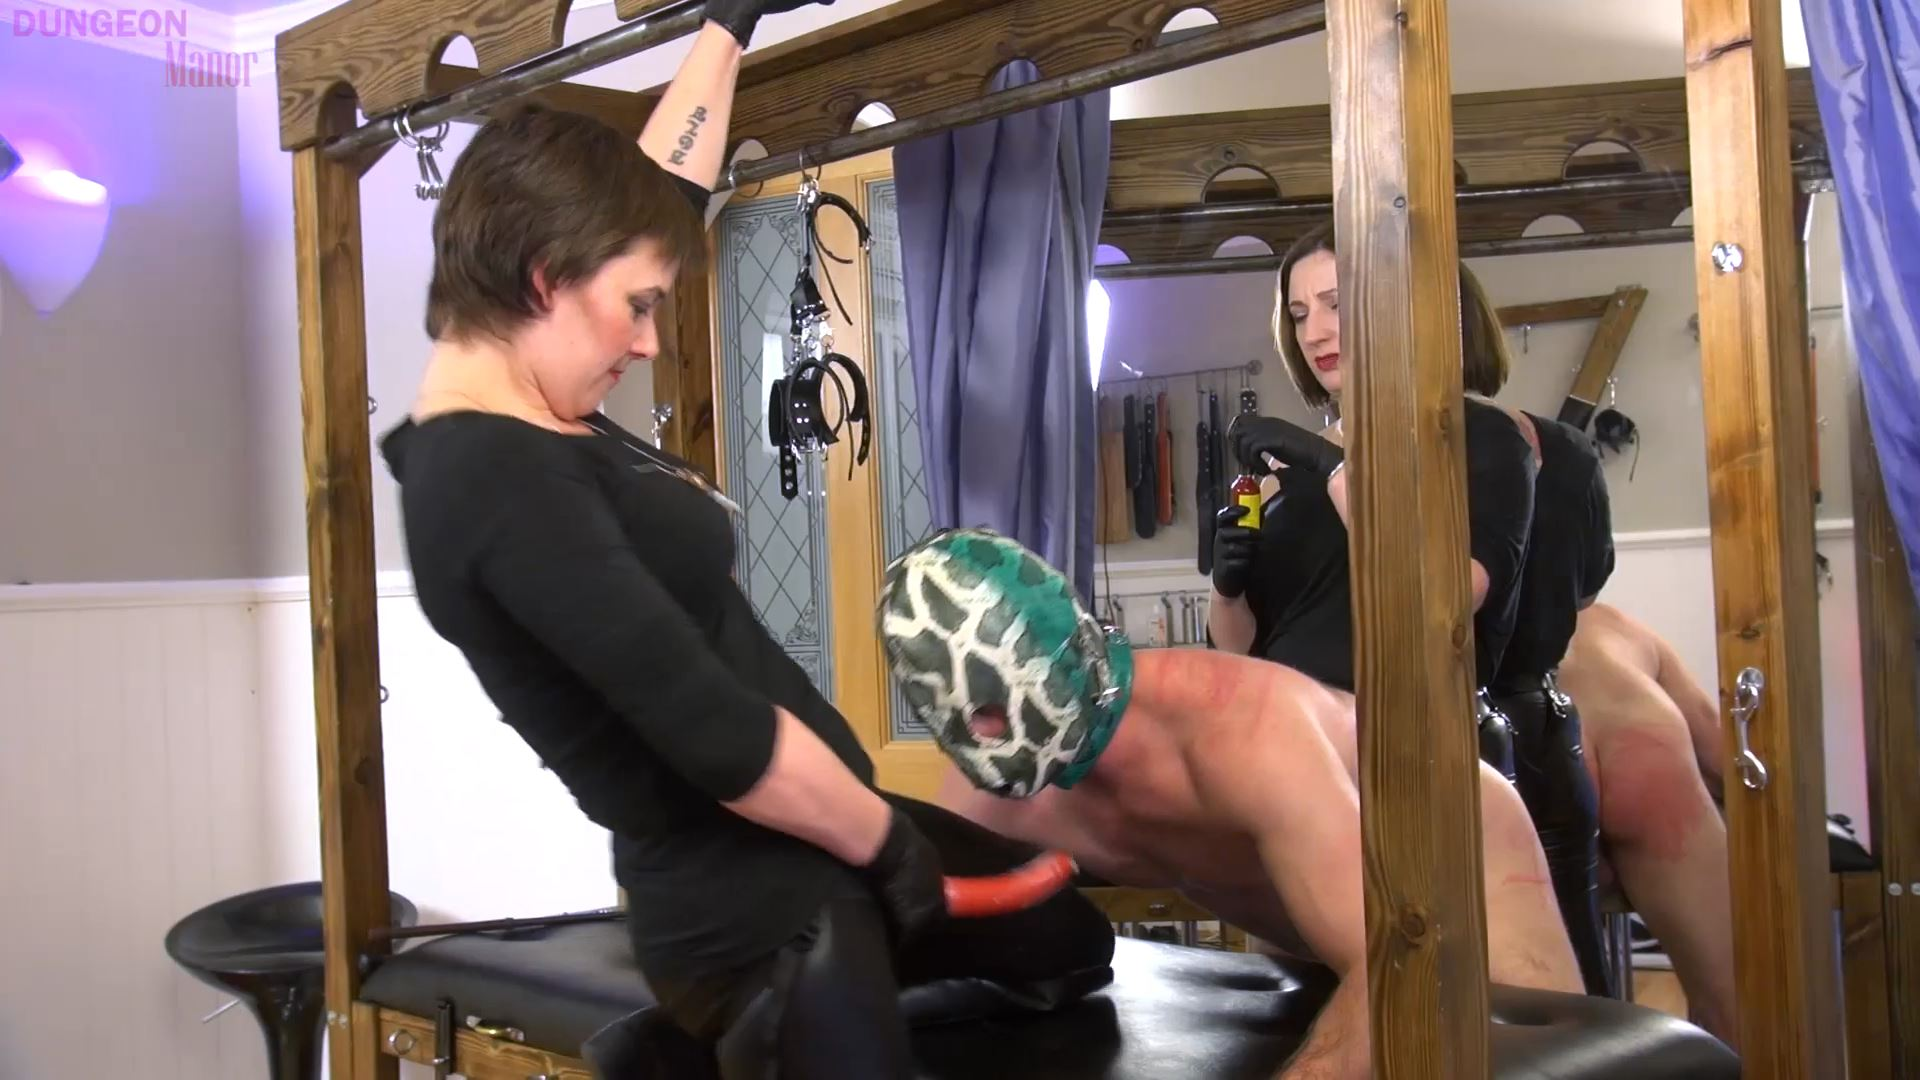 A dungeon Manor Production 432 - MISTRESS EVILYNE - FULL HD/1080p/MP4